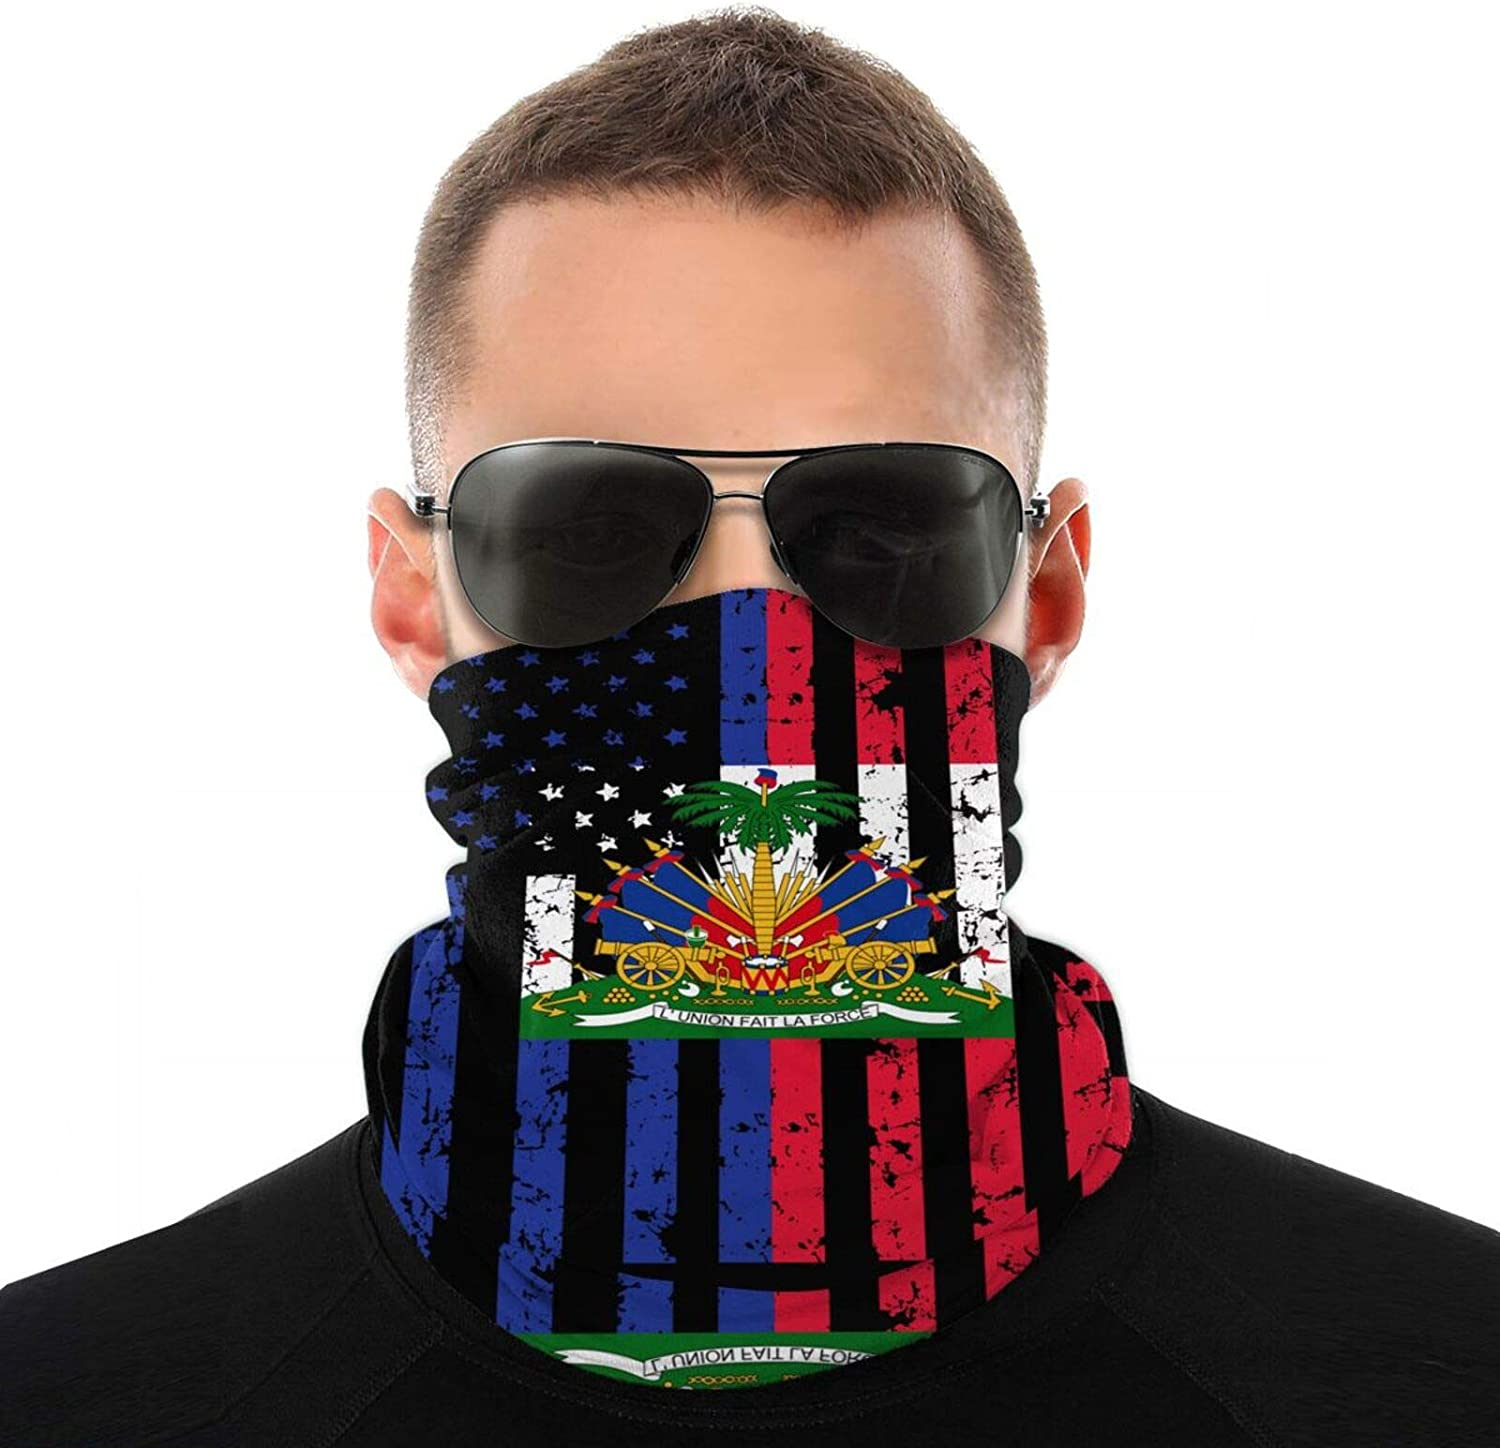 Neck Gaiter Cover Scarf American Haitian Flag Headwear Bandana Winter Windproof Face Covering Scarf Adjustable Neck Warmer for Running Hiking Outdoor Sports